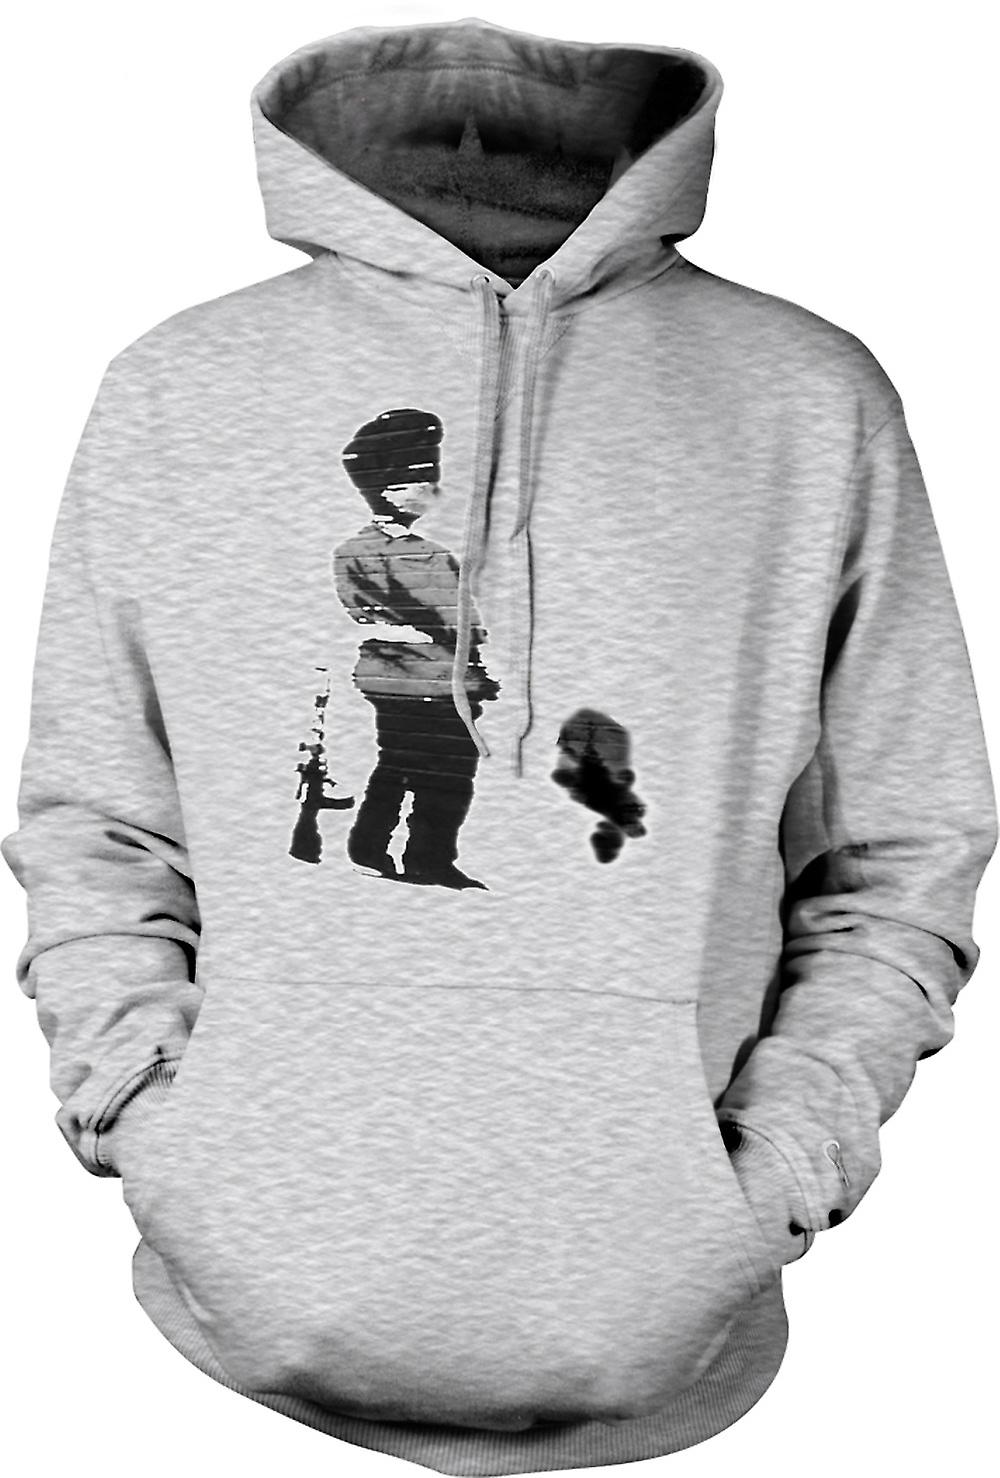 Mens Hoodie - Banksy Graffiti Art - Soldier